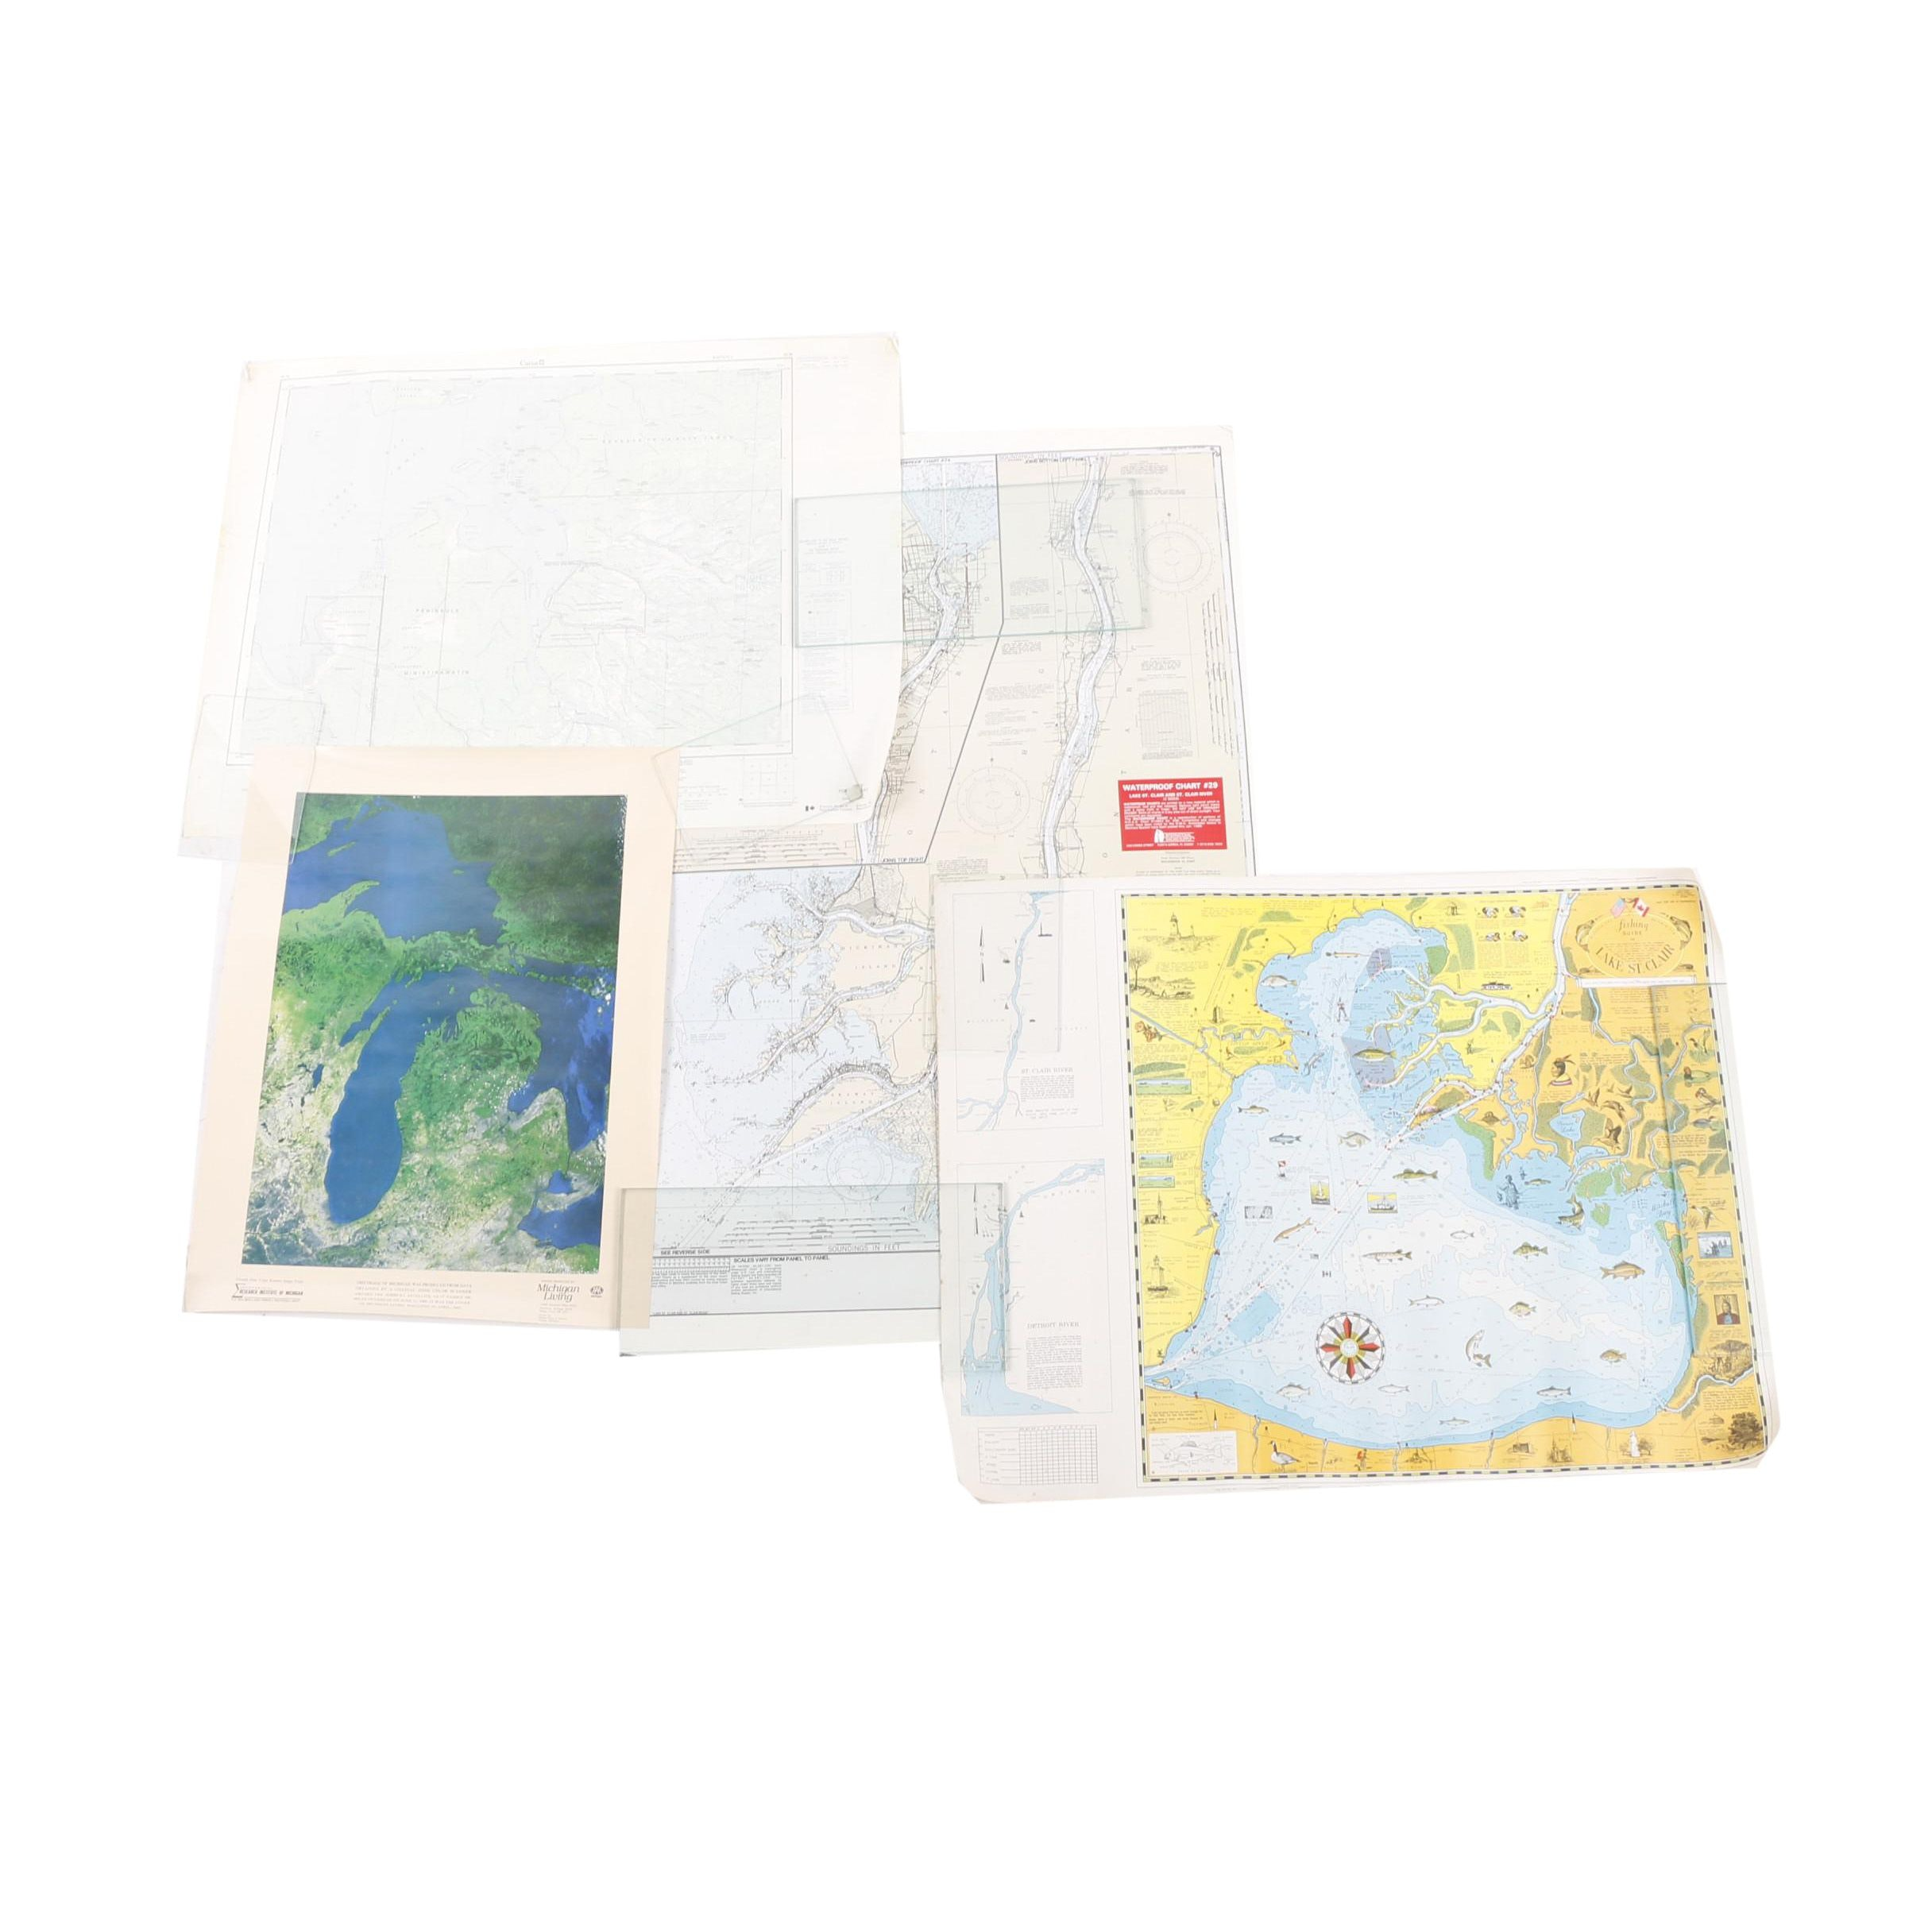 1980s Michigan and Quebec Maps Including Waterproof Chart of Lake St. Clair